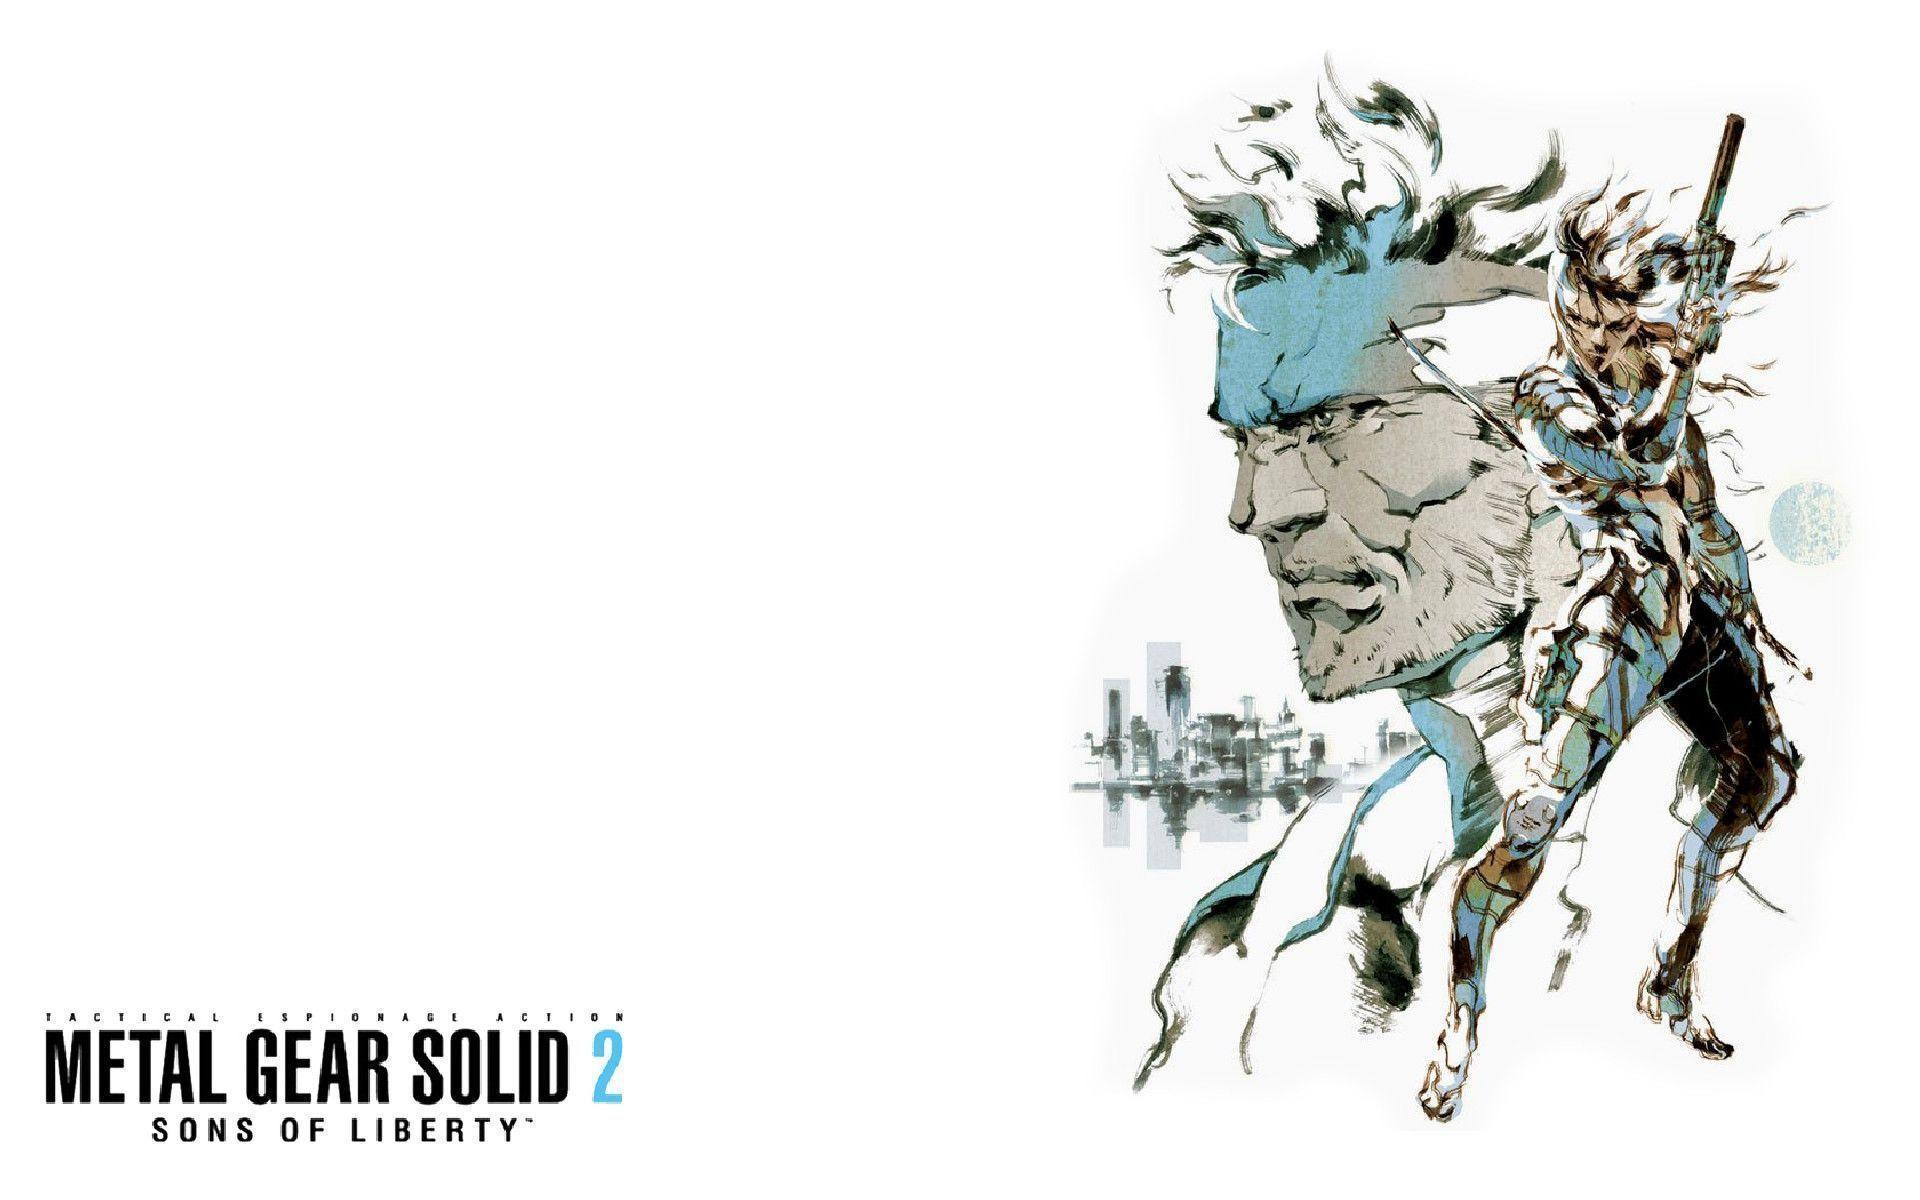 Metal Gear Solid 2 Wallpapers Wallpaper Cave